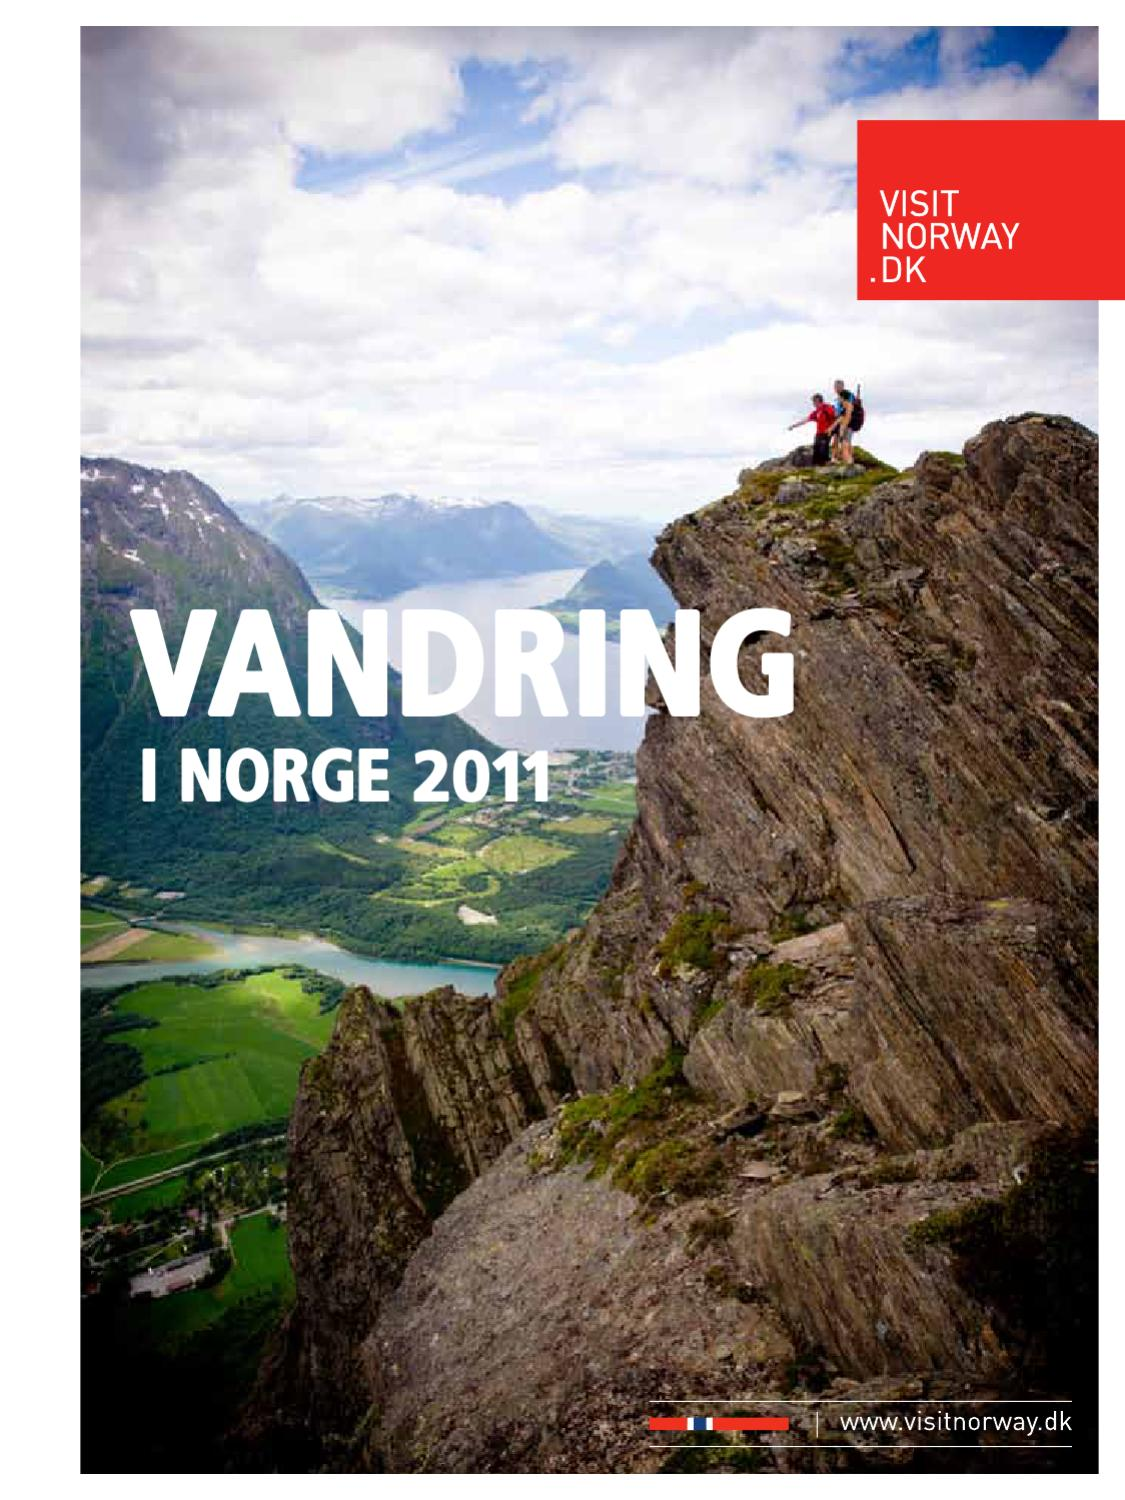 Vandring I Norge By Sia Santielle Issuu